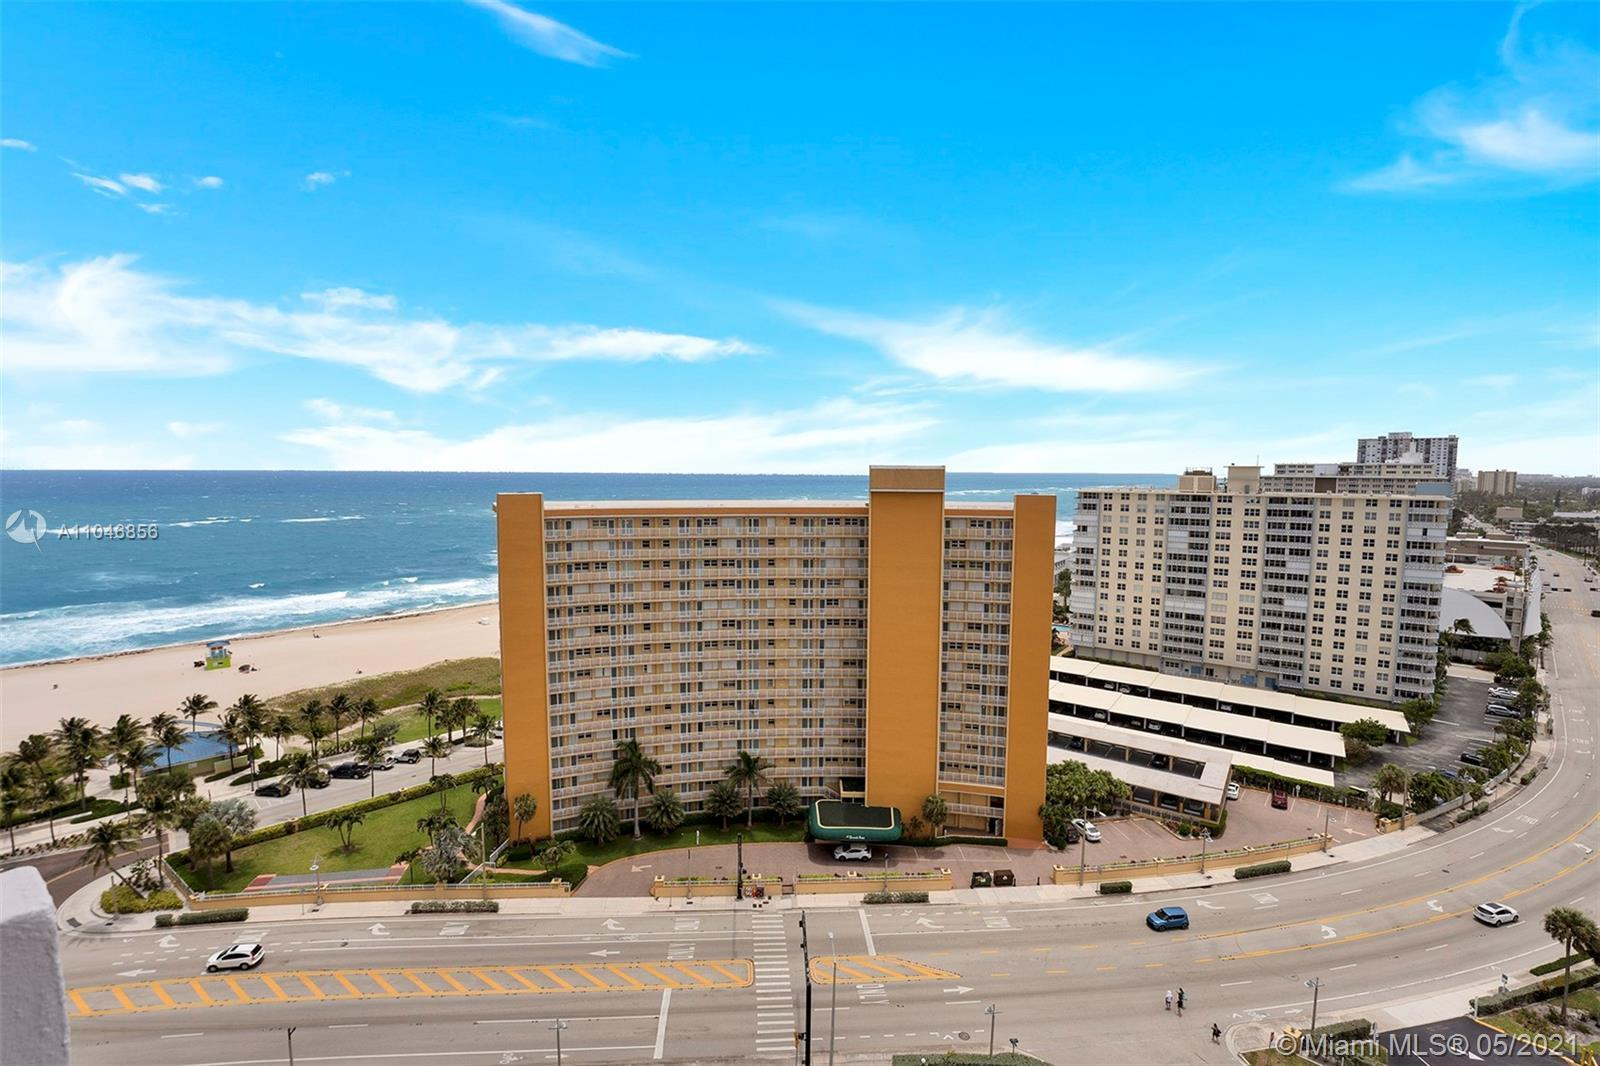 Looking for a view? here you have Oceanview and  Intracoastal from this 1 BR/1.5 BA condo. This unit